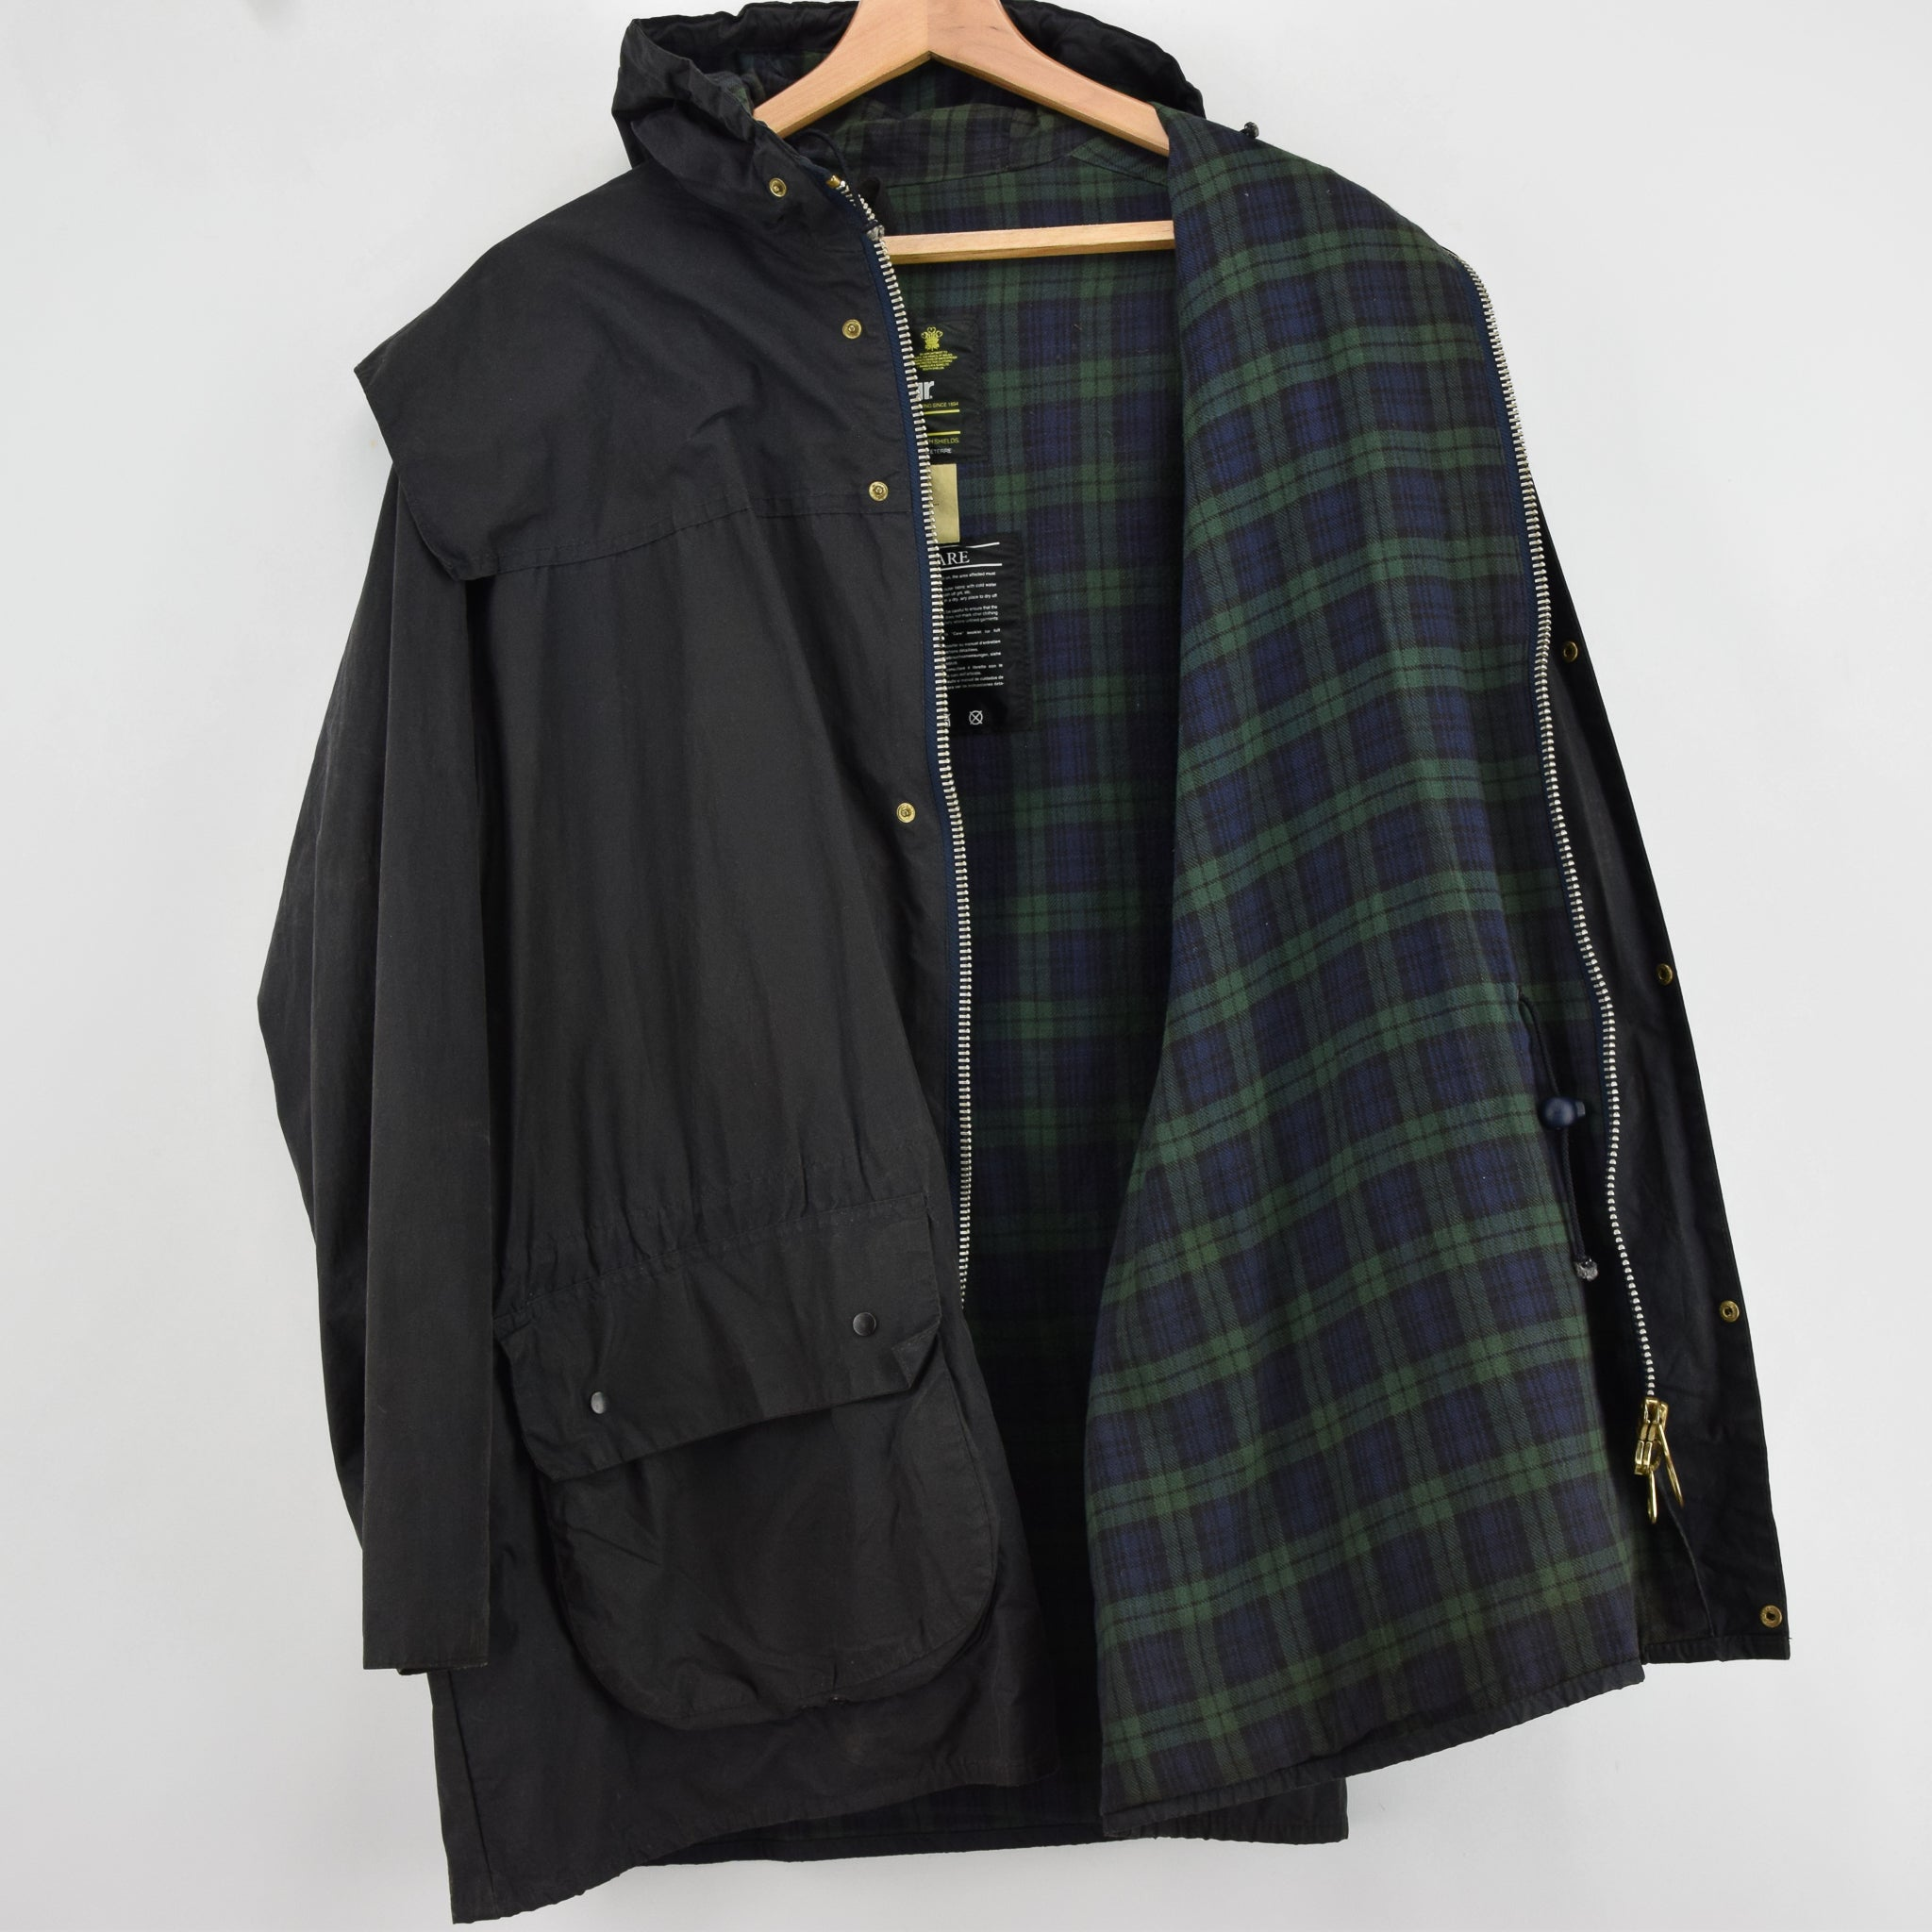 Vintage Barbour A6 Lined Durham Black Hooded Wax Jacket Coat Made In UK L lining